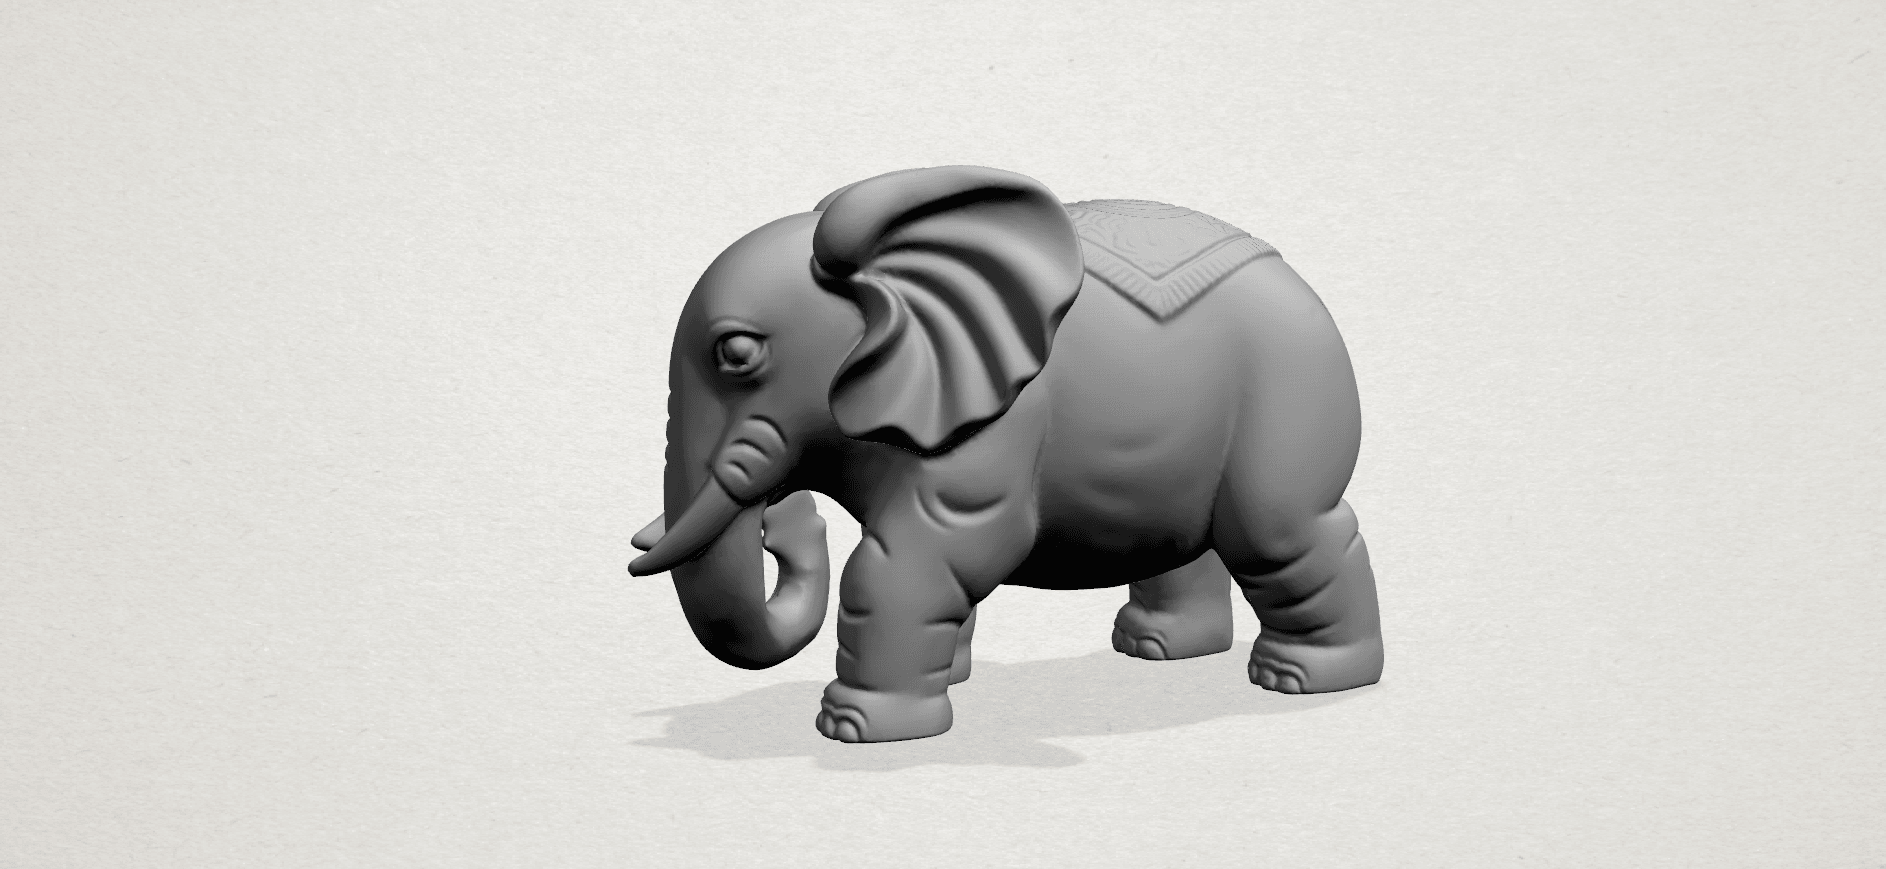 Elephant 03-A01.png Download free STL file Elephant 03 • 3D printable design, GeorgesNikkei